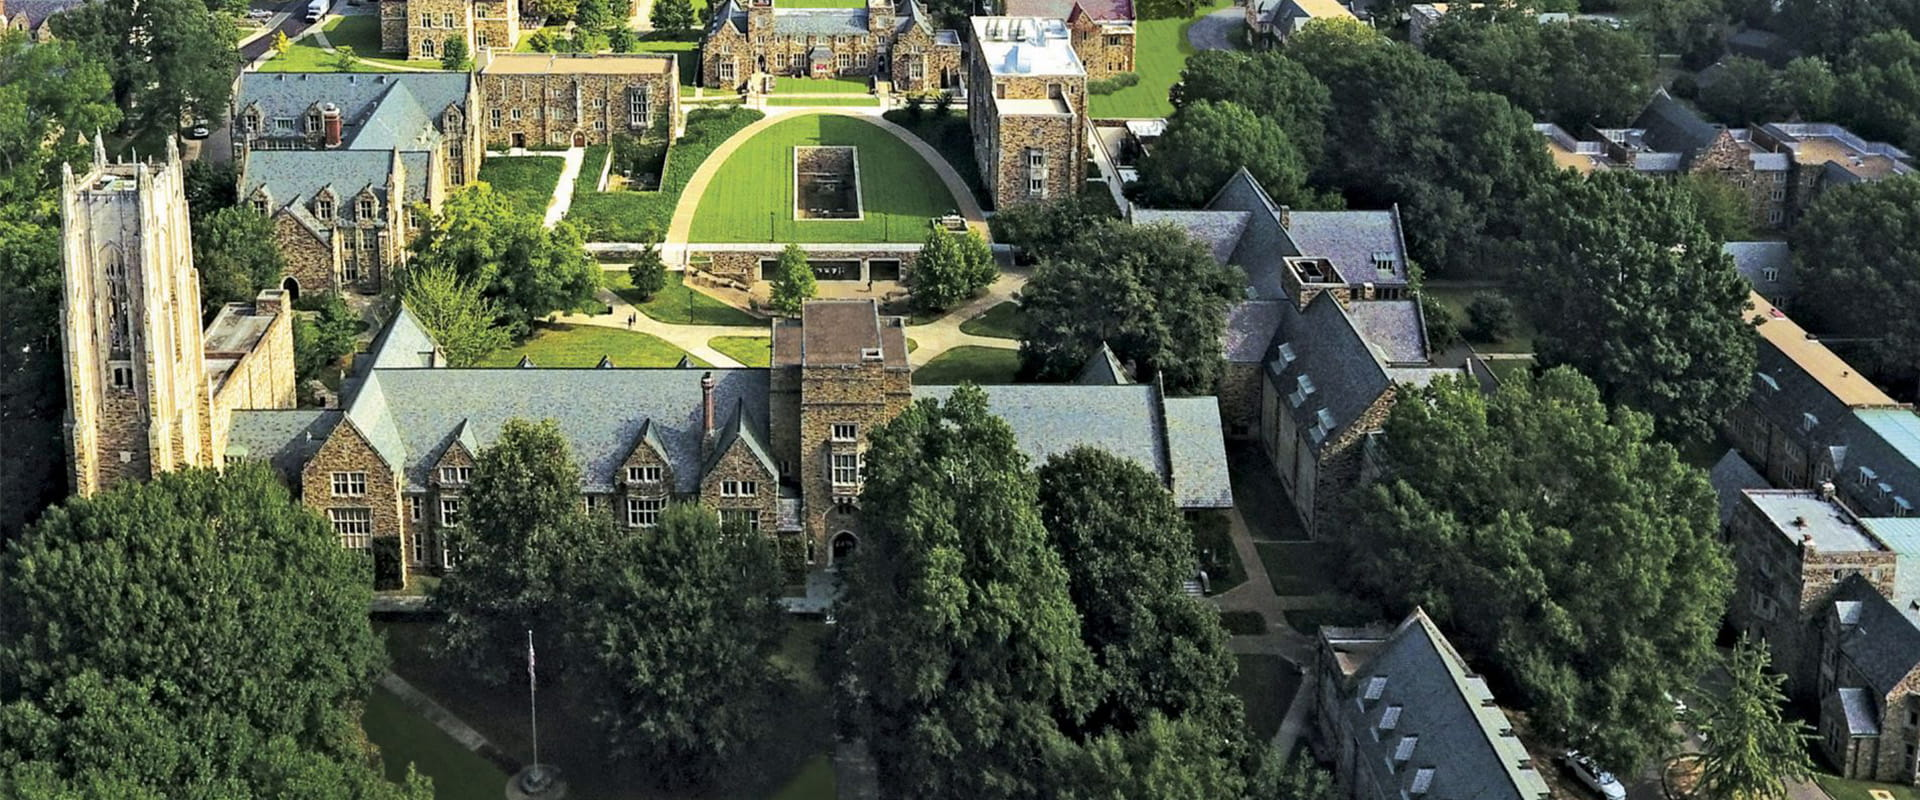 A view of campus as seen from the air.